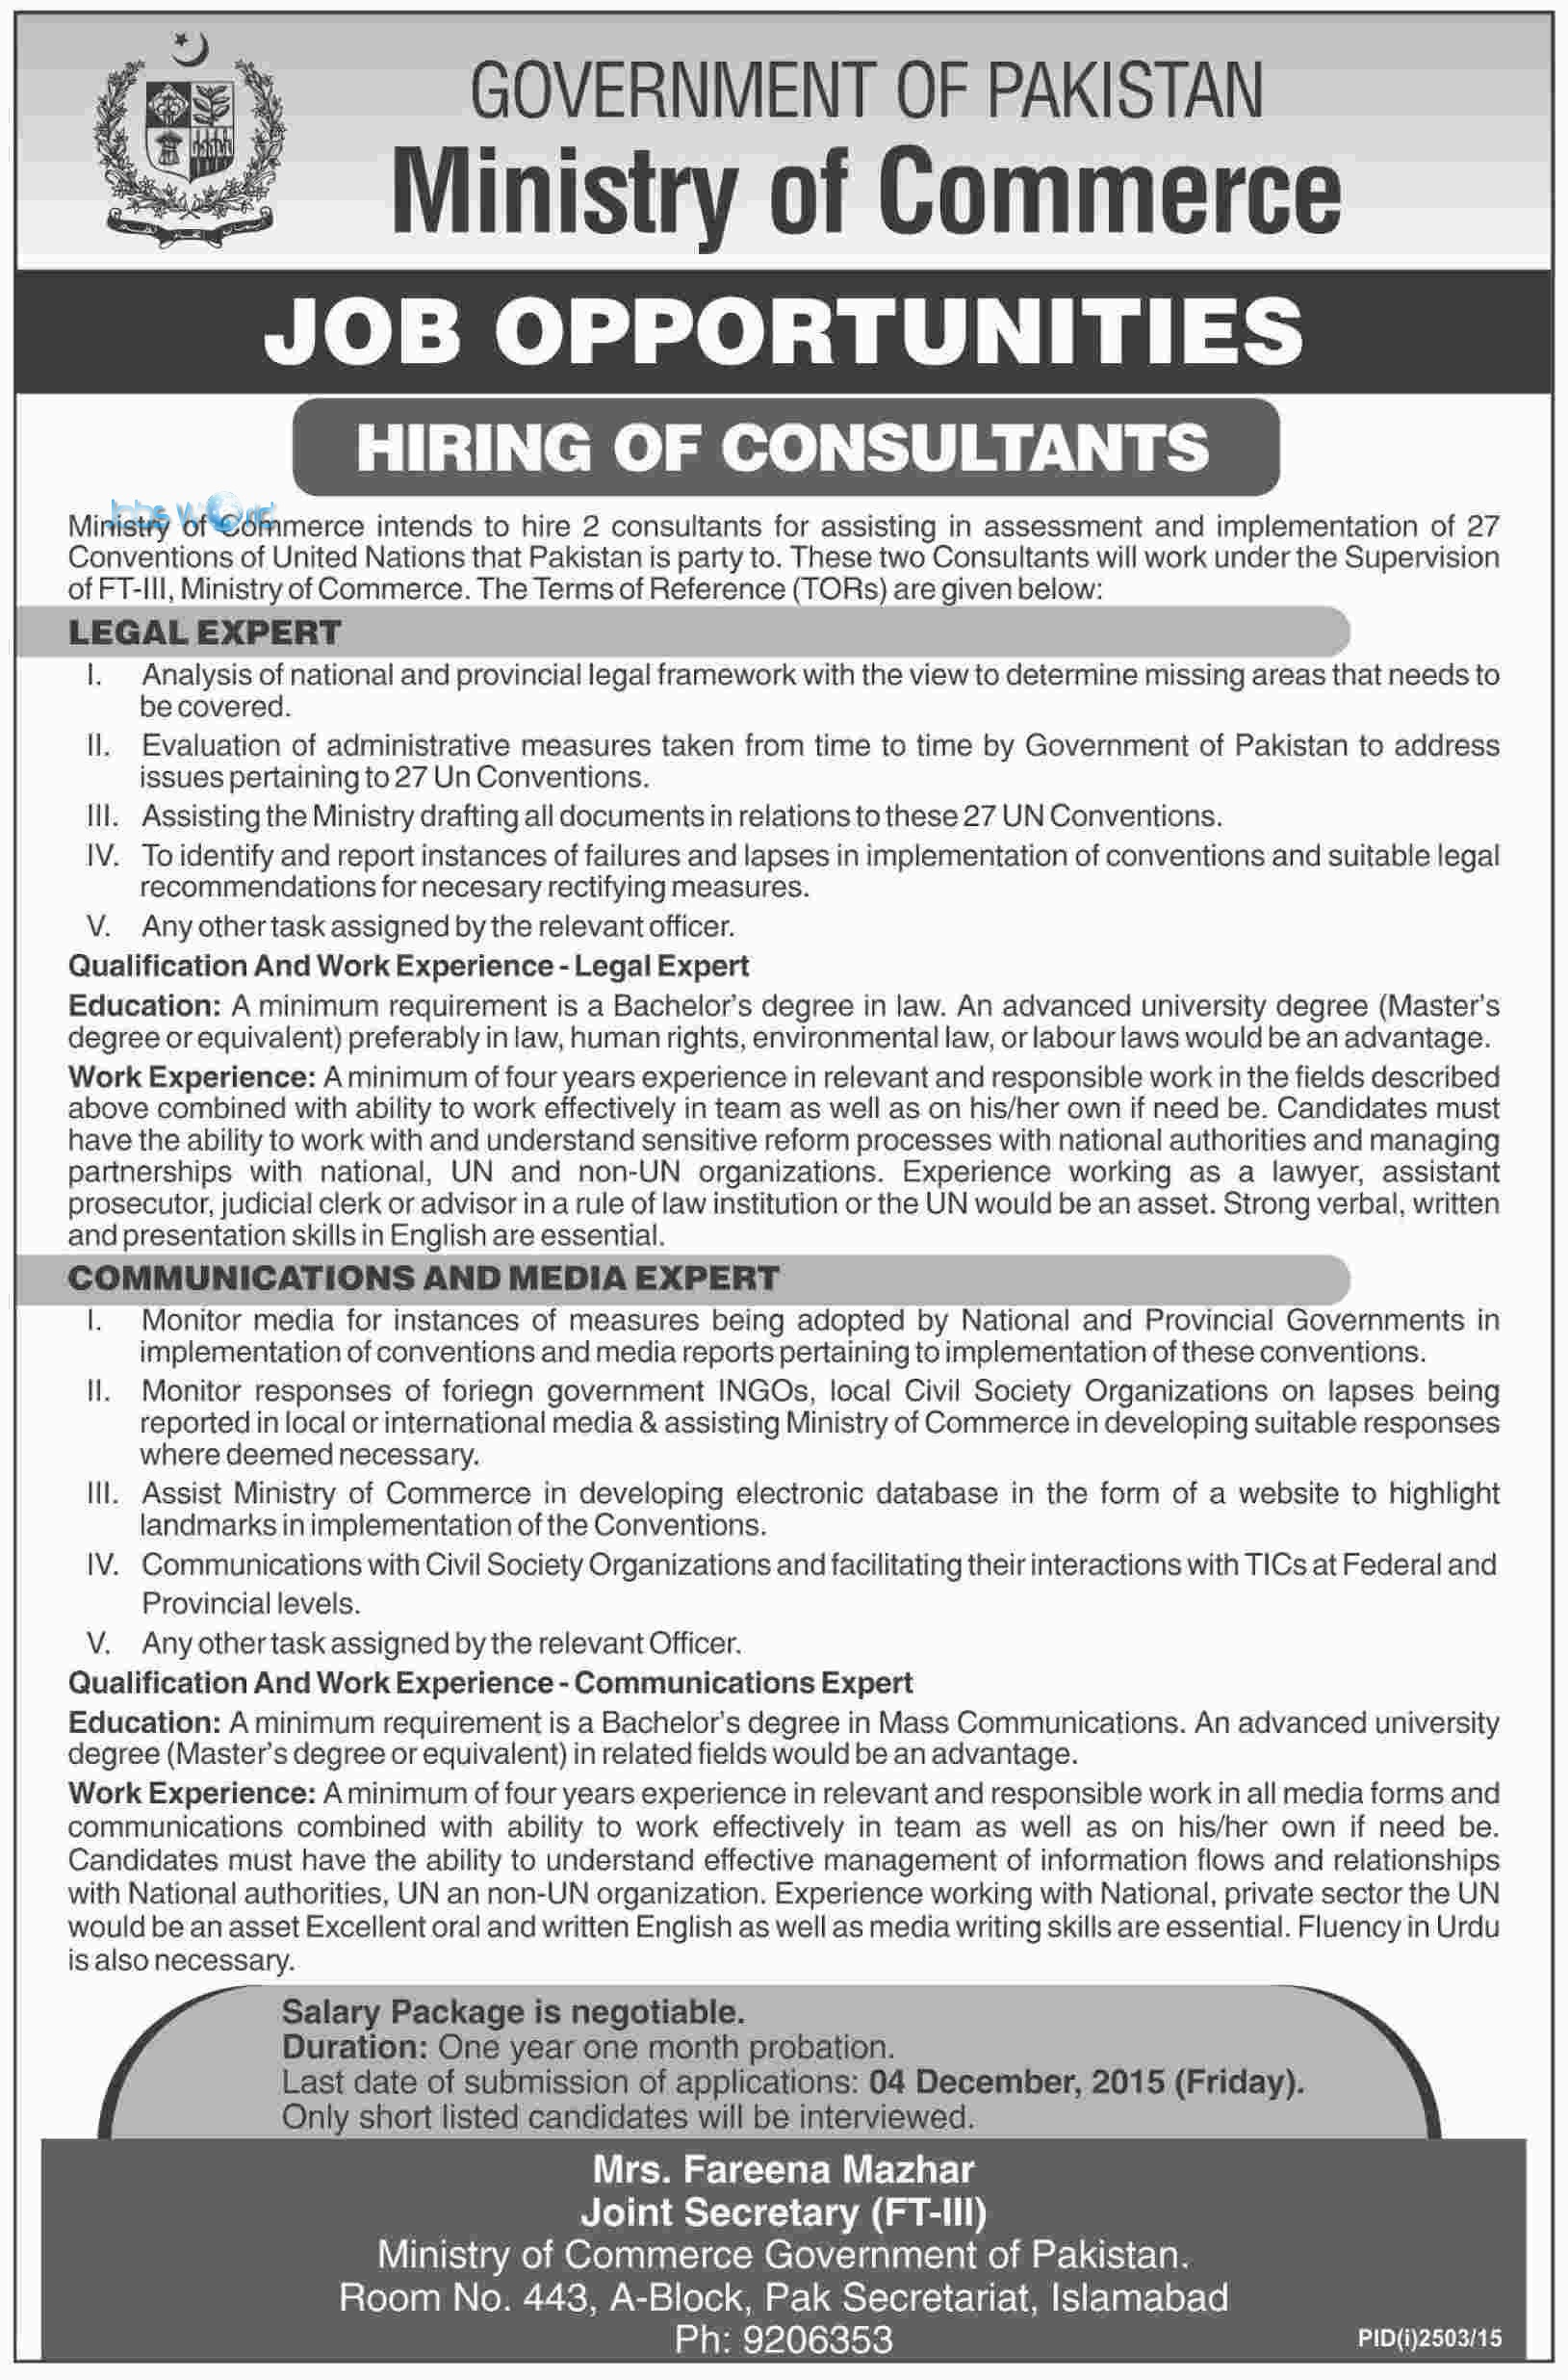 ministry of commerce jobs opportunities for consultant posts jang minitry of commerce josb advertisement